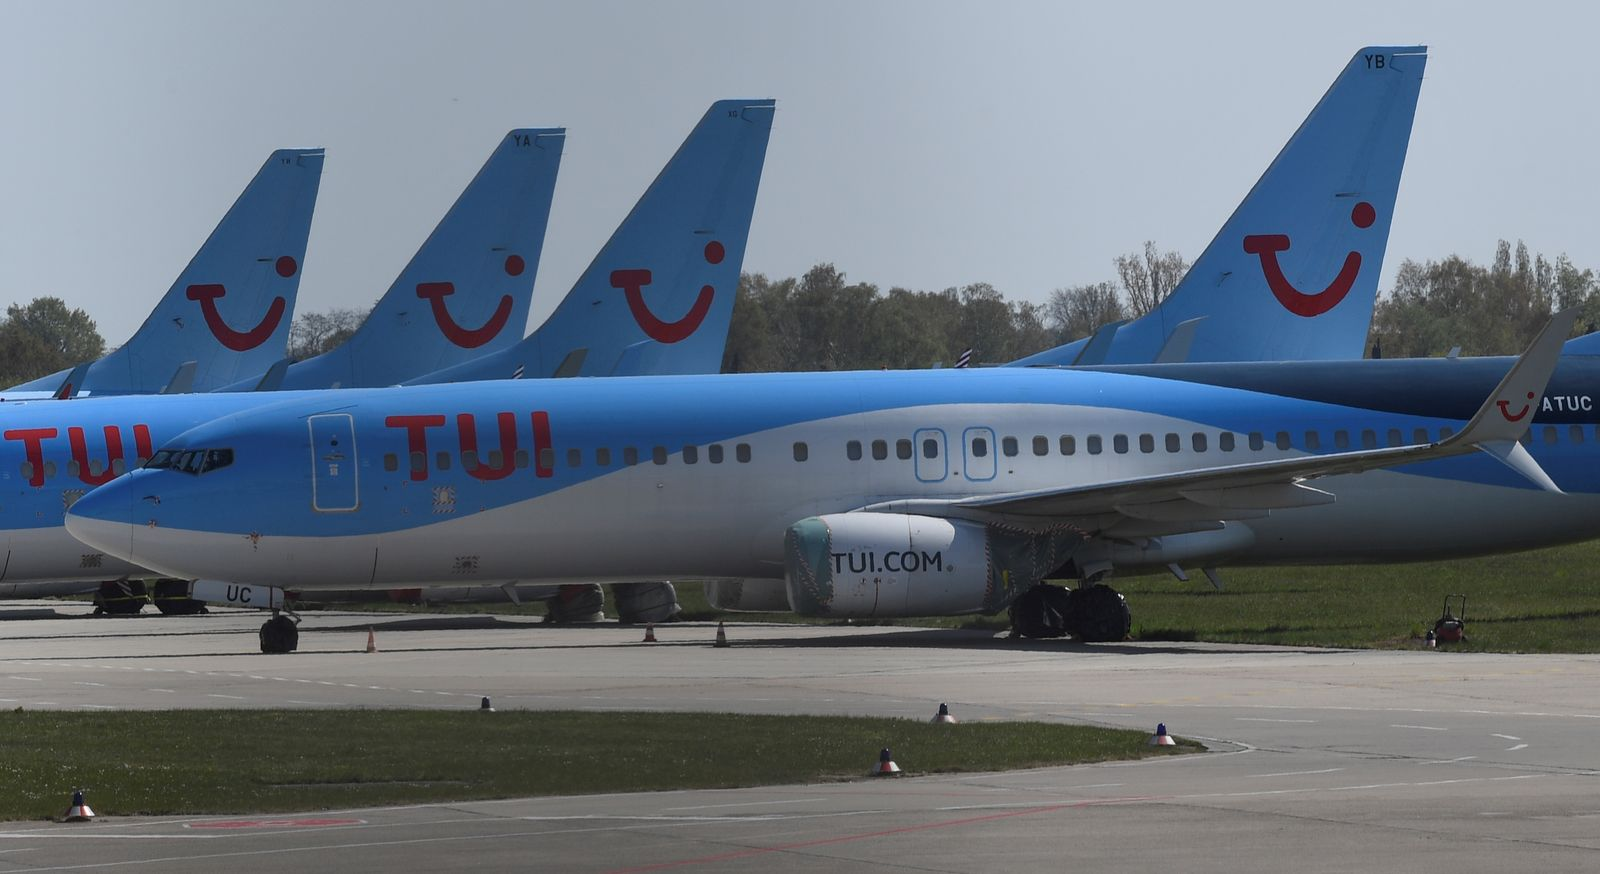 Planes of the German carrier Tui are parked on a closed runway during the spread of the coronavirus disease (COVID-19) at the airport in Hanover,